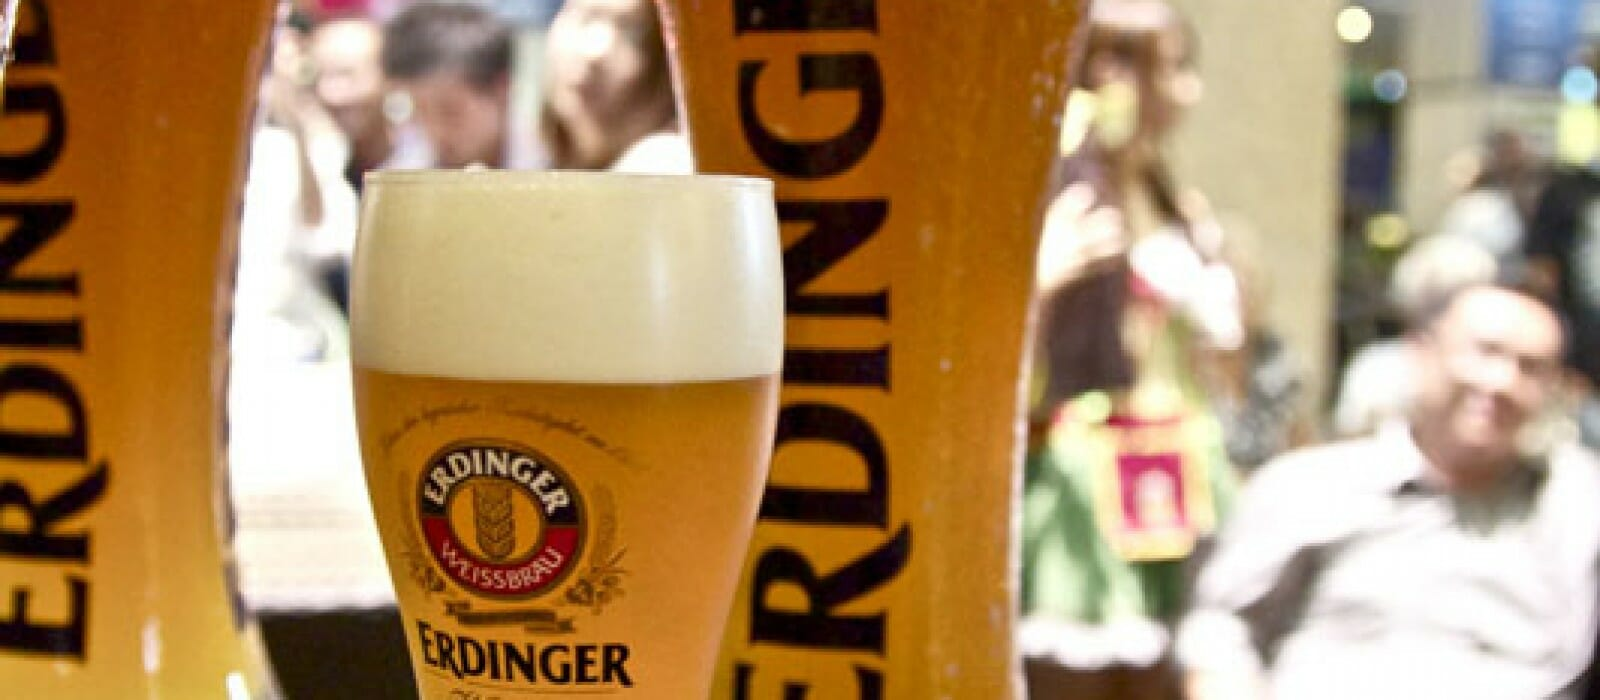 Difference between the one pint Erdinger and Three Litre Erdinger